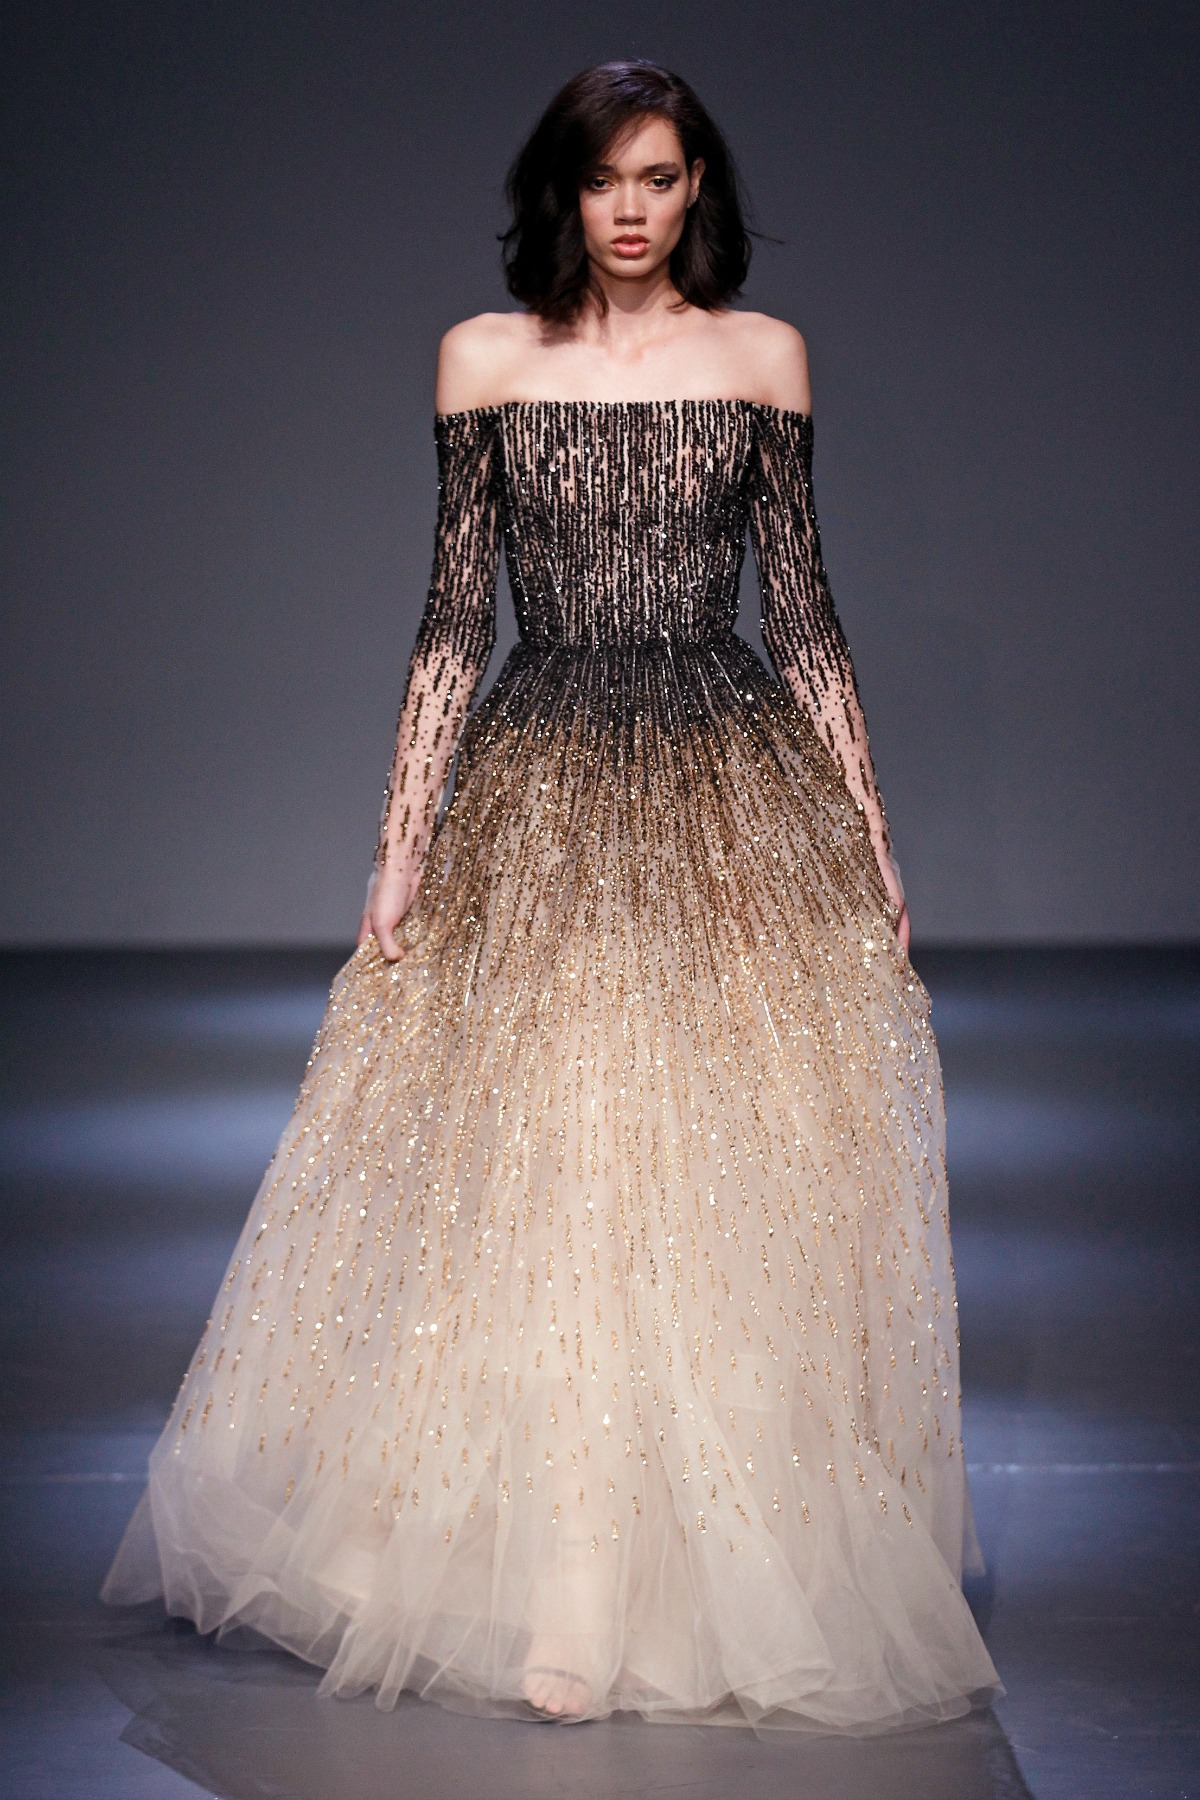 Pamella Roland Fall 2018 Runway I Crystal Ballgown #NYFW #WinterFashion